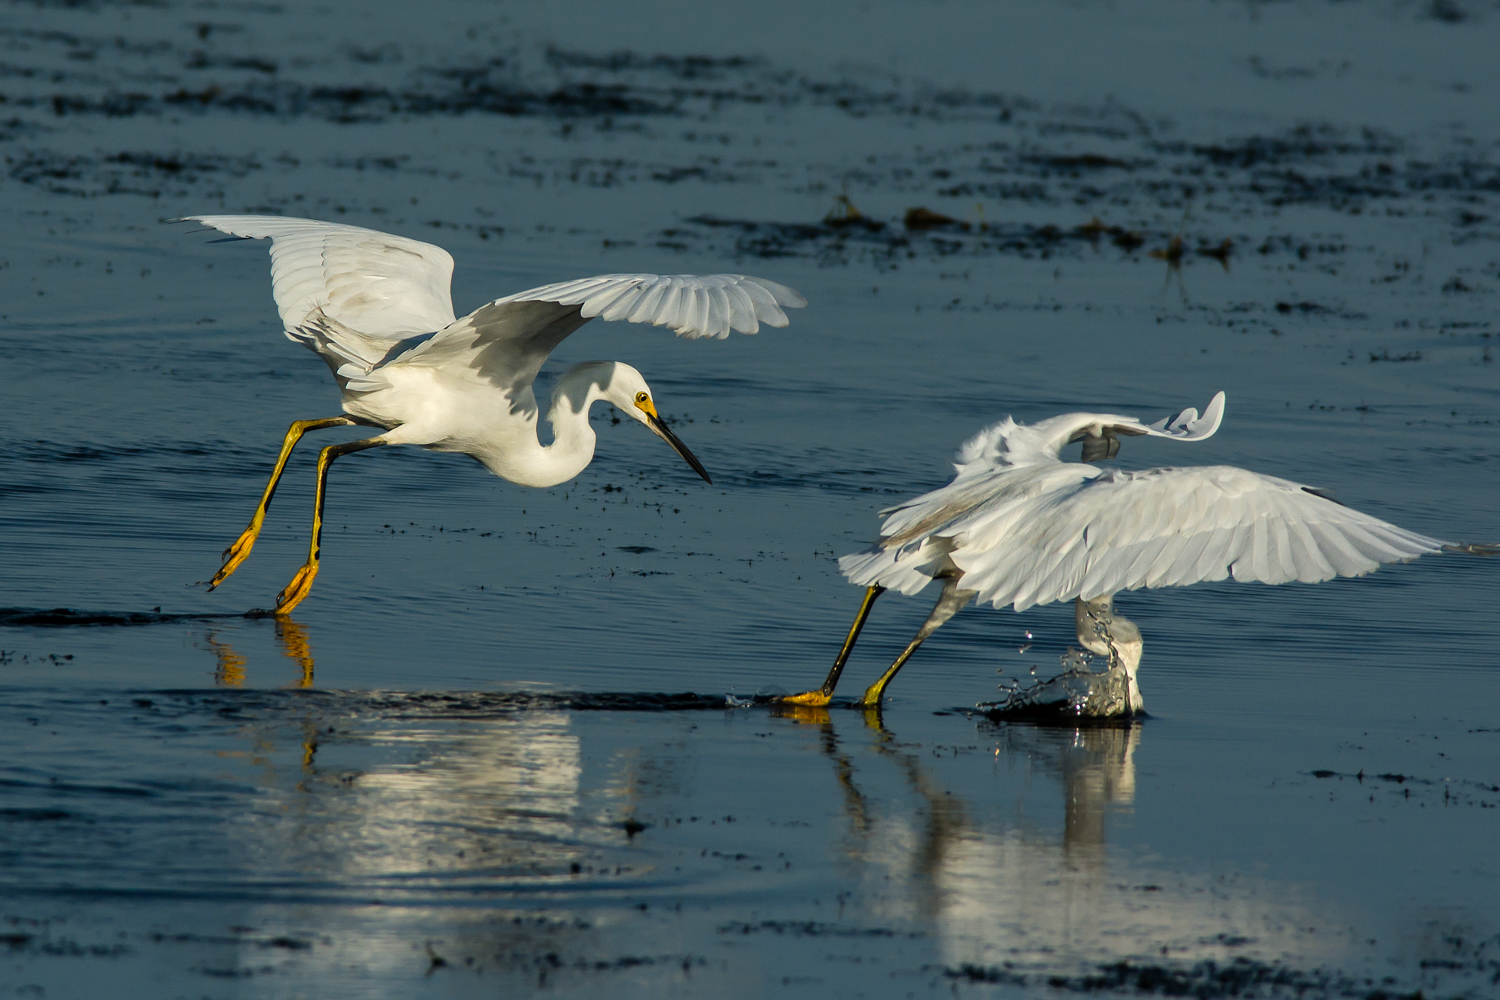 Snowy Egret, Striking while Foot-dragging, Bayou Sauvage NWR (LA), 2013